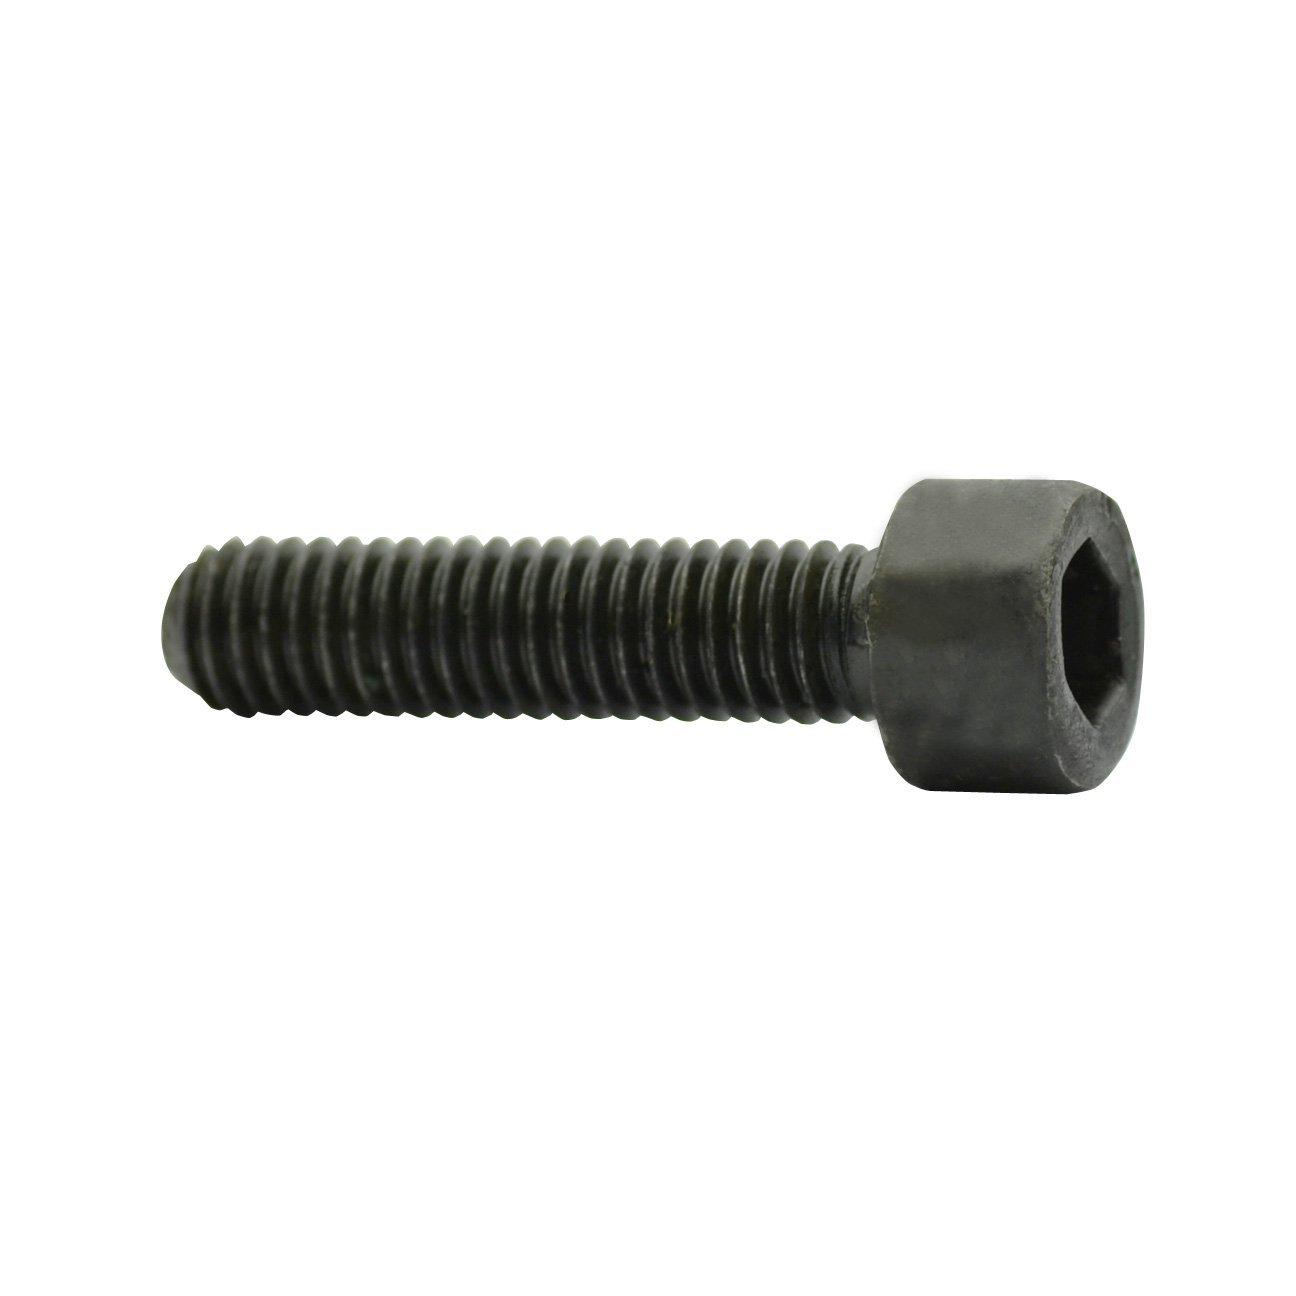 CMT 990.054.00 TCEI Screw, 3 x 16 x 19mm CMT USA Inc.